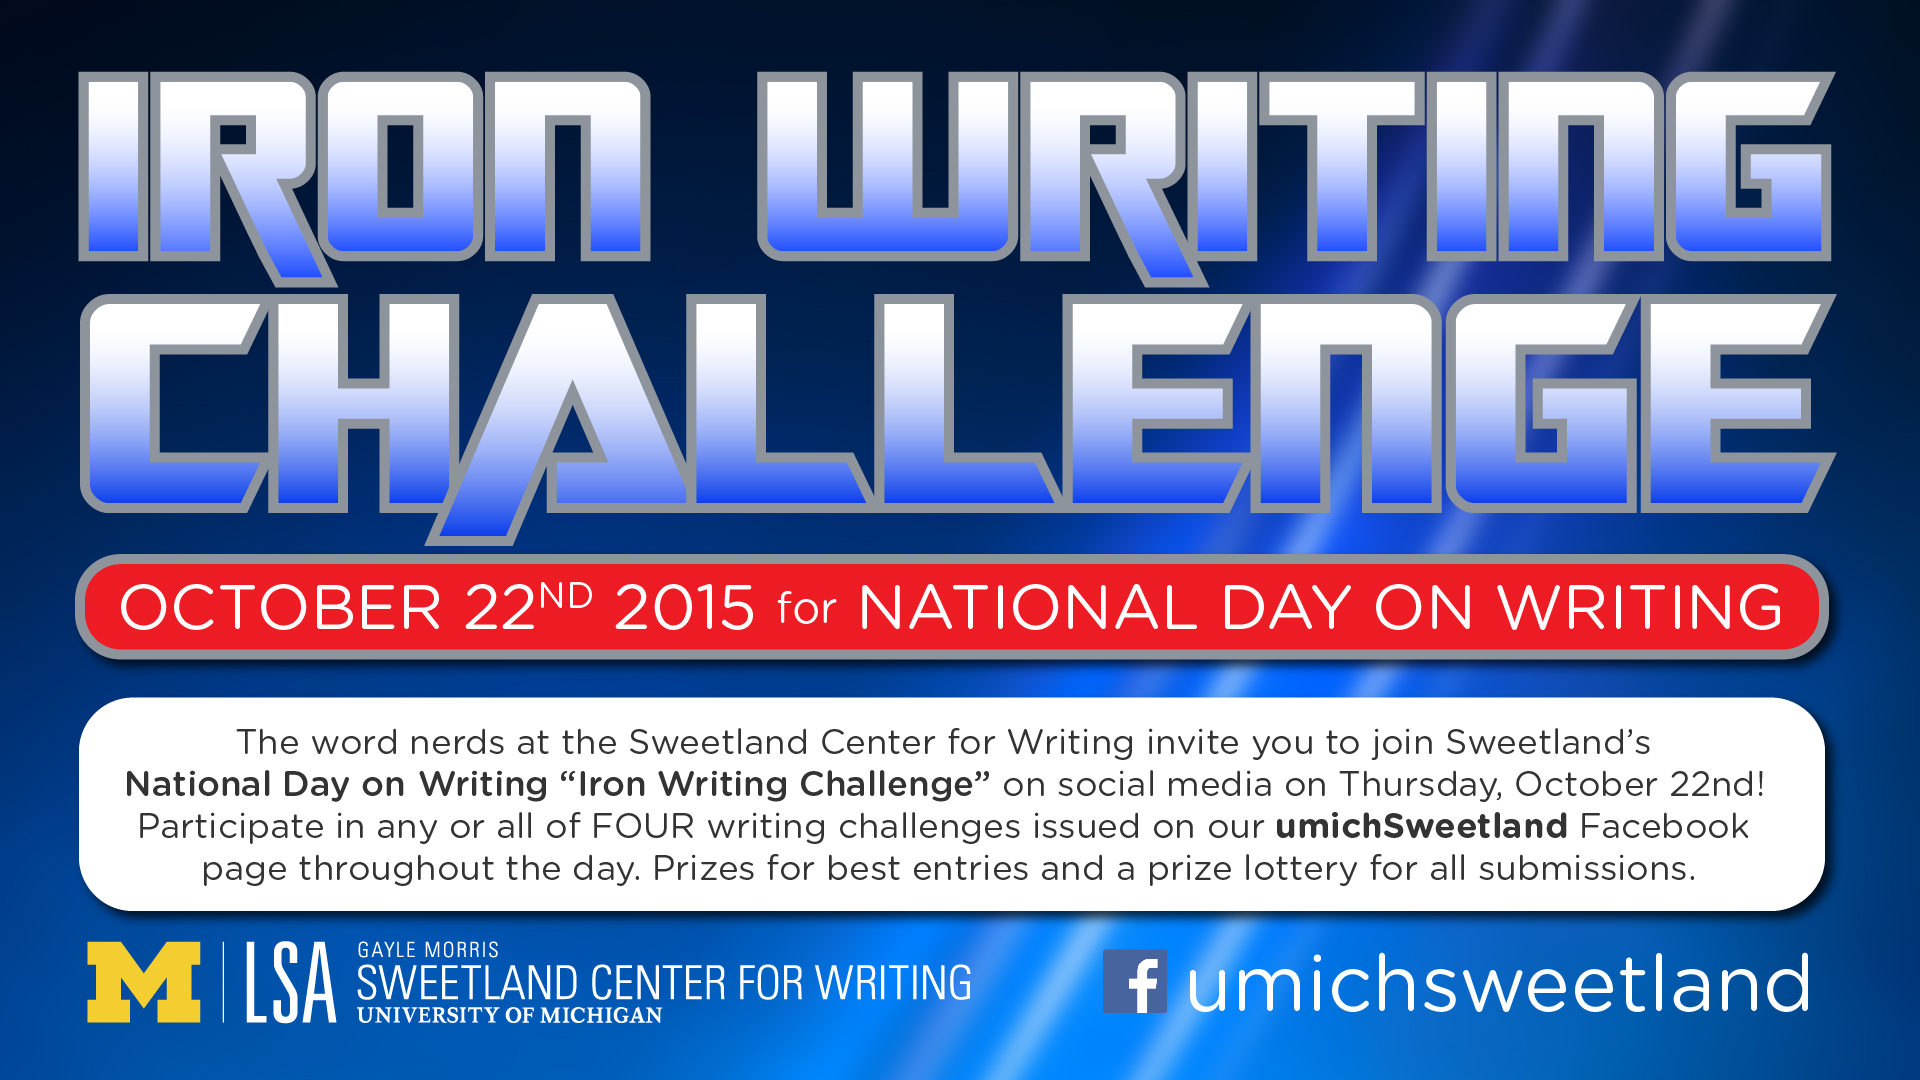 Sweetland_IronWritingChallenge_expires10_23_2015